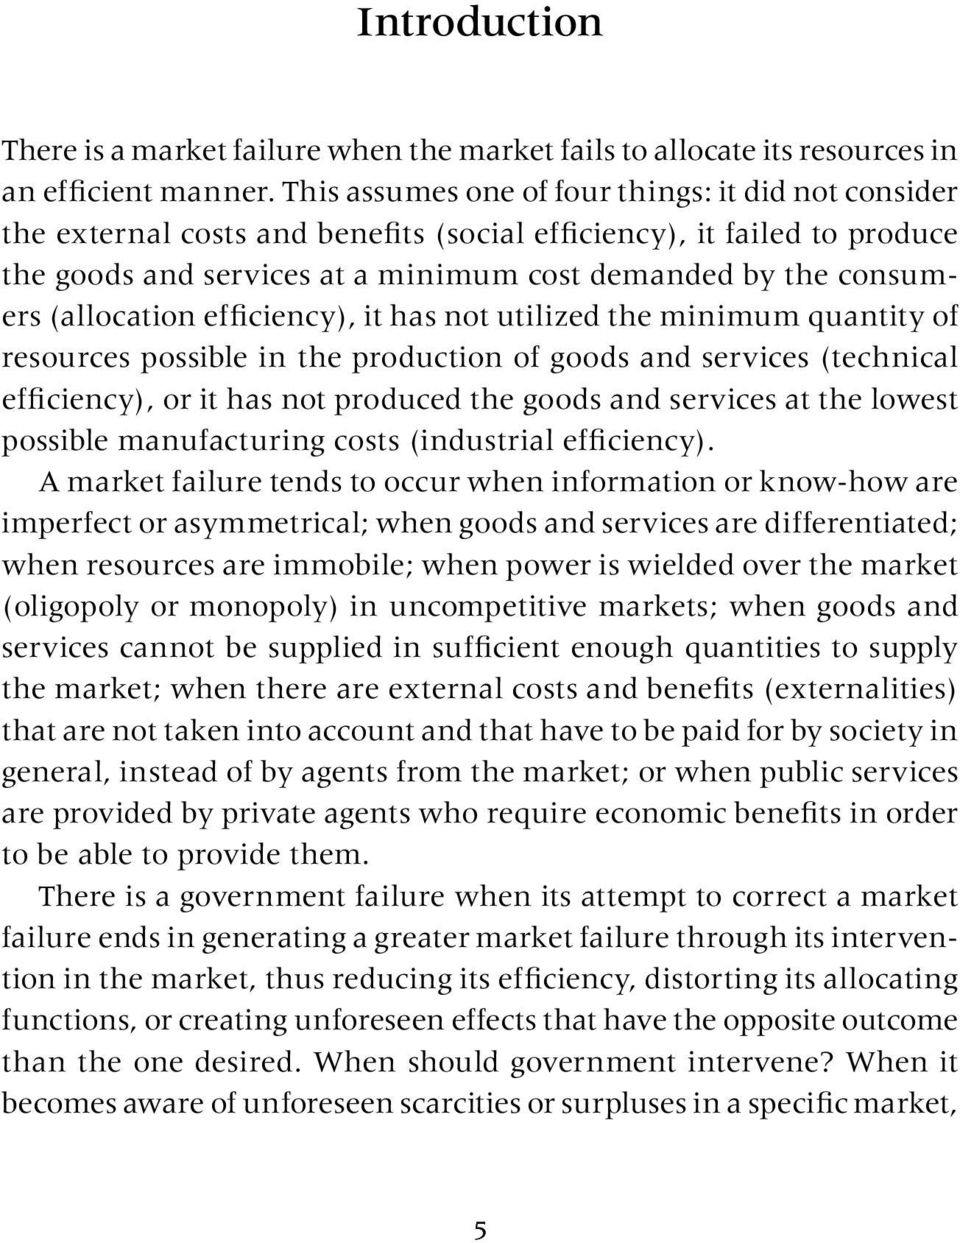 (allocation efficiency), it has not utilized the minimum quantity of resources possible in the production of goods and services (technical efficiency), or it has not produced the goods and services